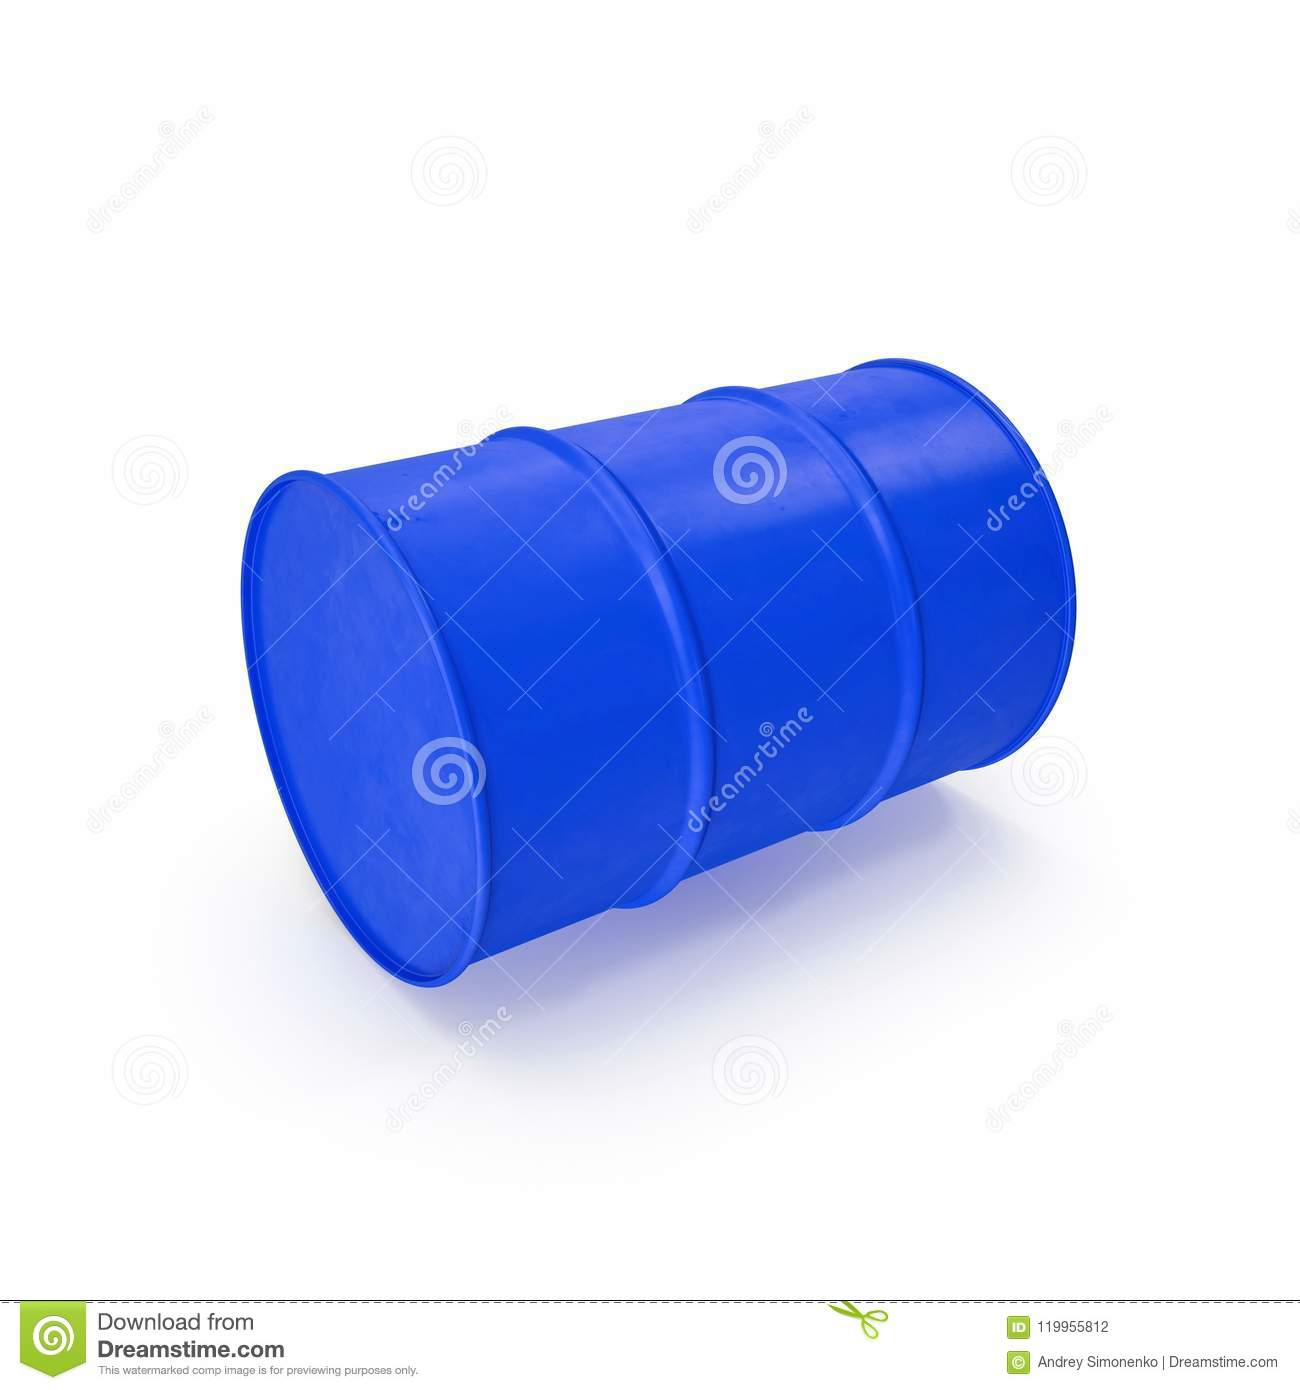 Blue Metal Oil Drum Isolated on White. 3D illustration